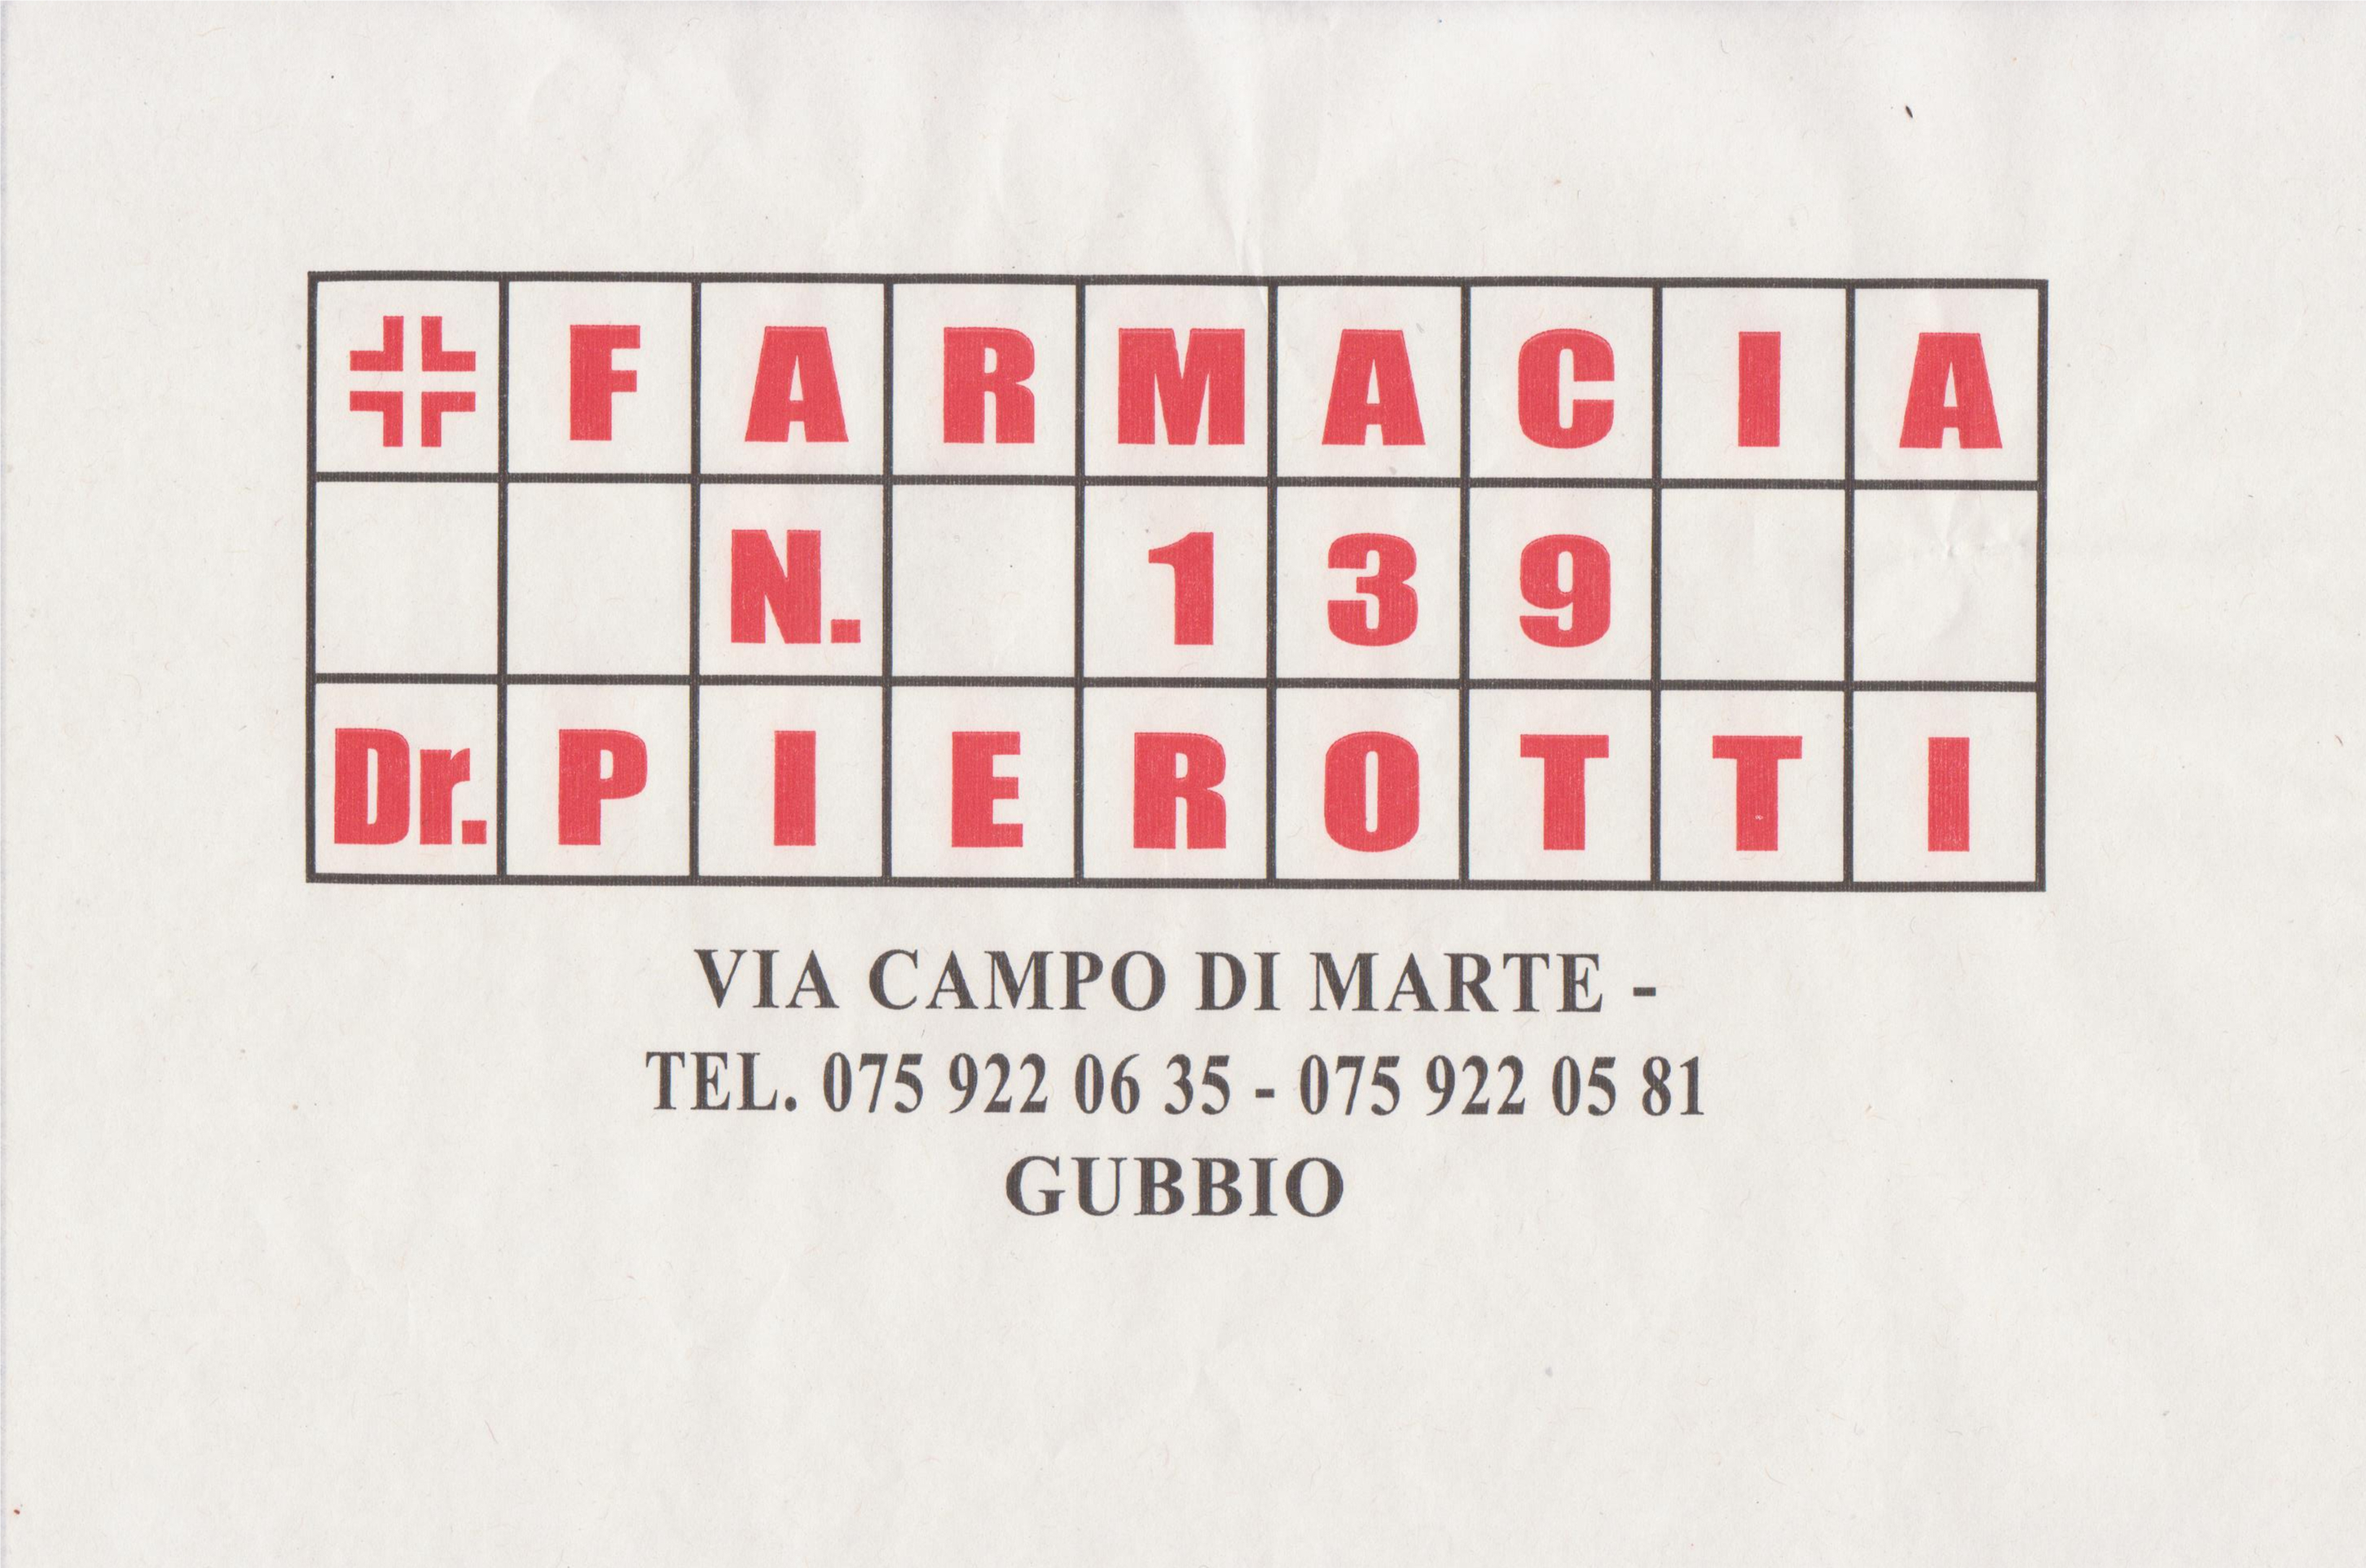 Farmacia Pierotti